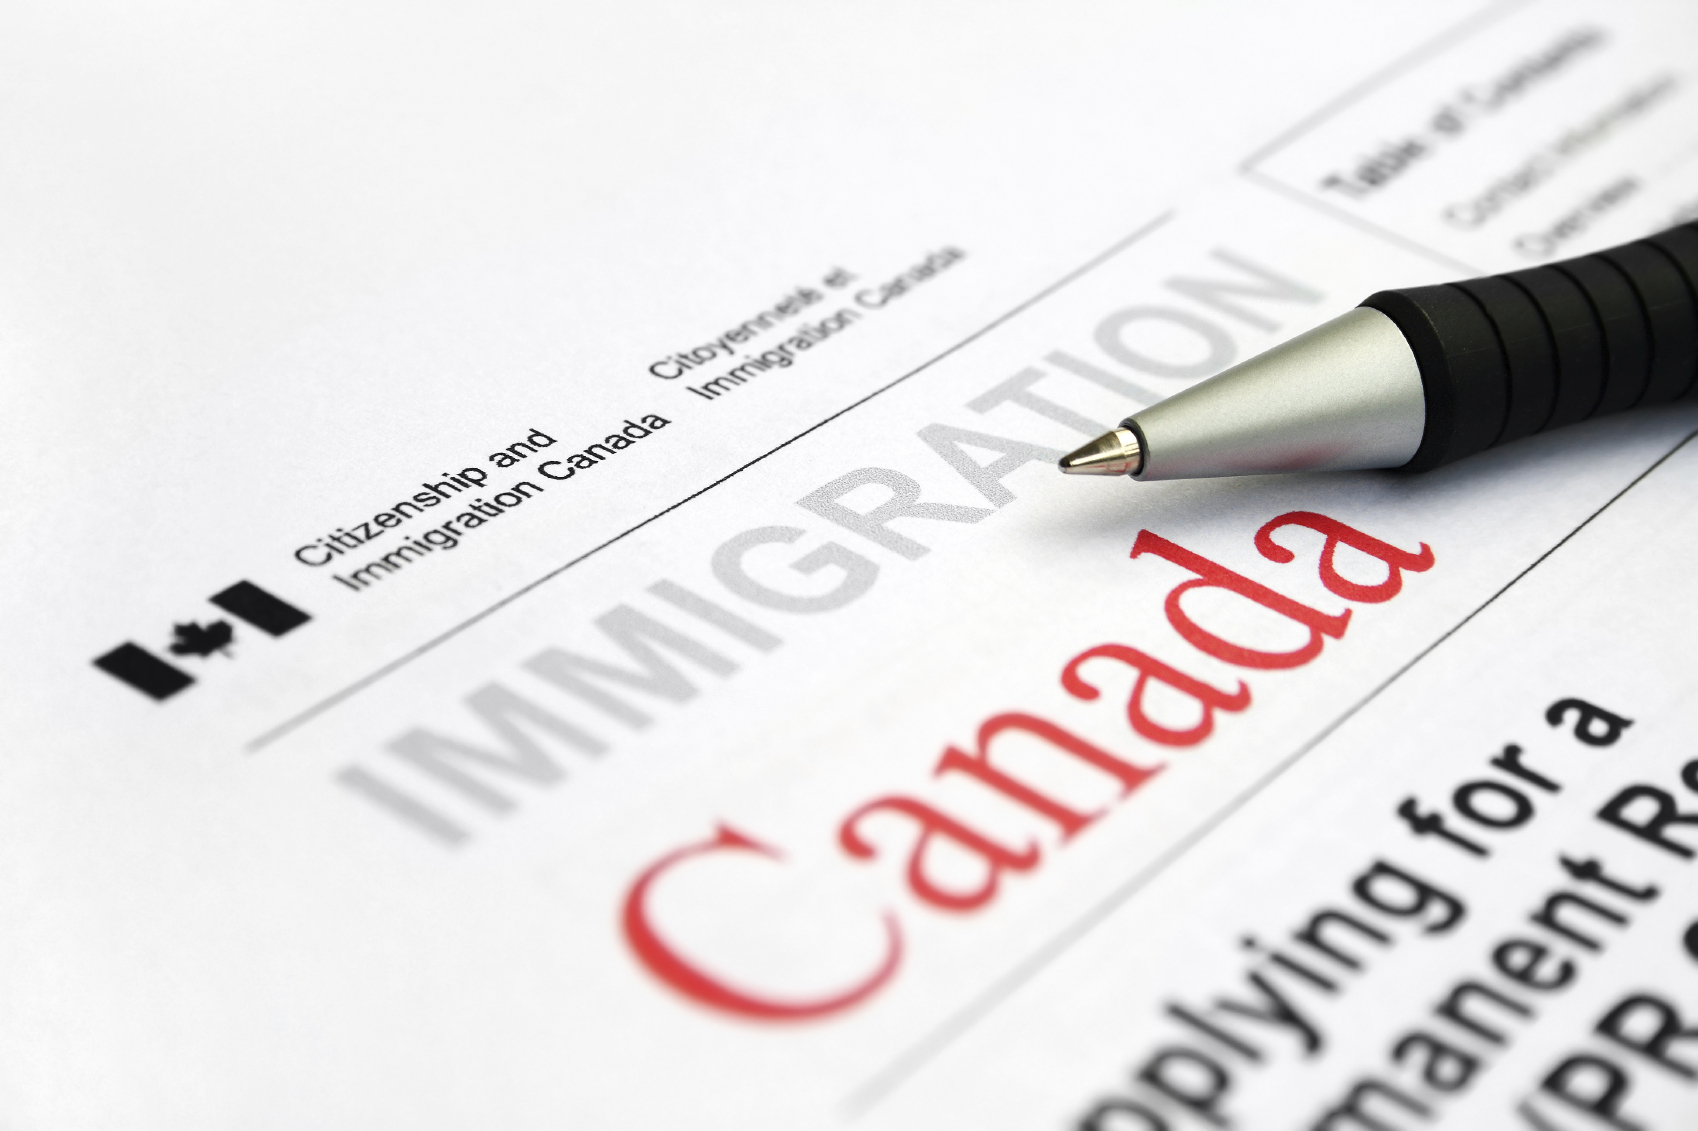 What makes AOL Mississauga the Best Choice to Pursue Immigration Consultant Diploma?